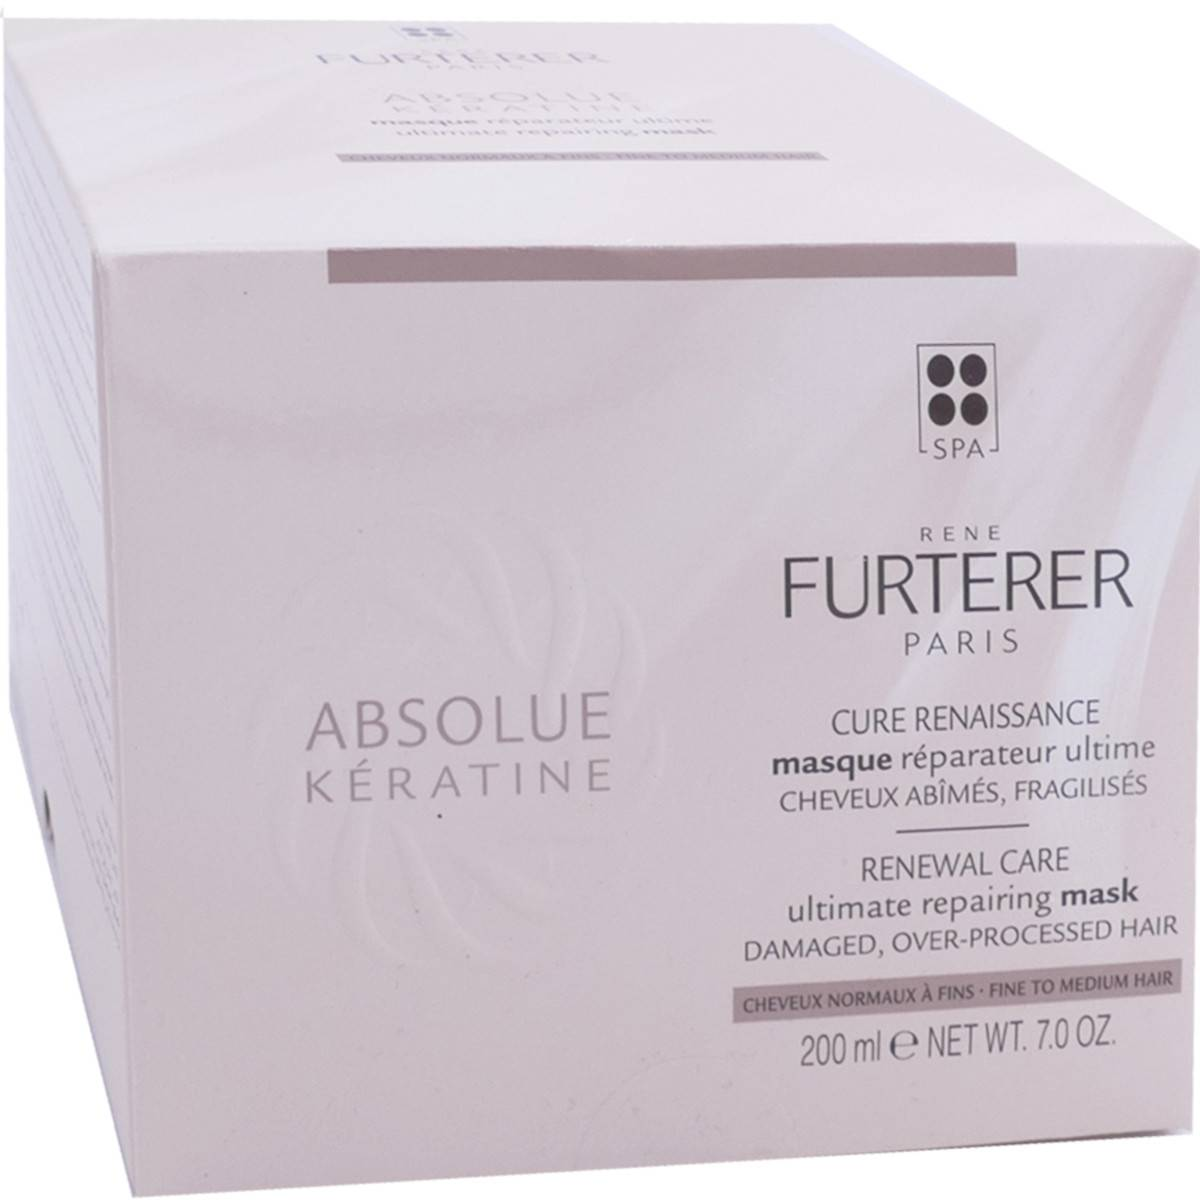 Rene furterer absolue keratine masque 200 ml cheveux normaux a fins